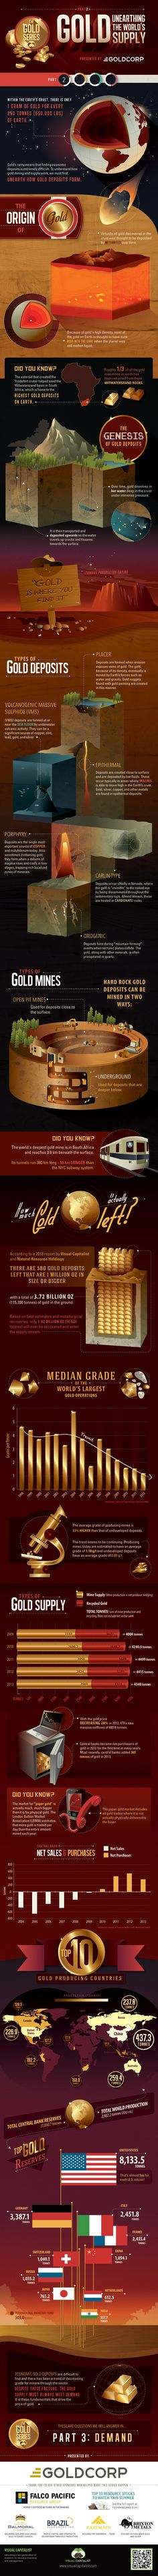 The 2014 Gold Series (Part 2 of 5): Unearthing the World's Gold Supply